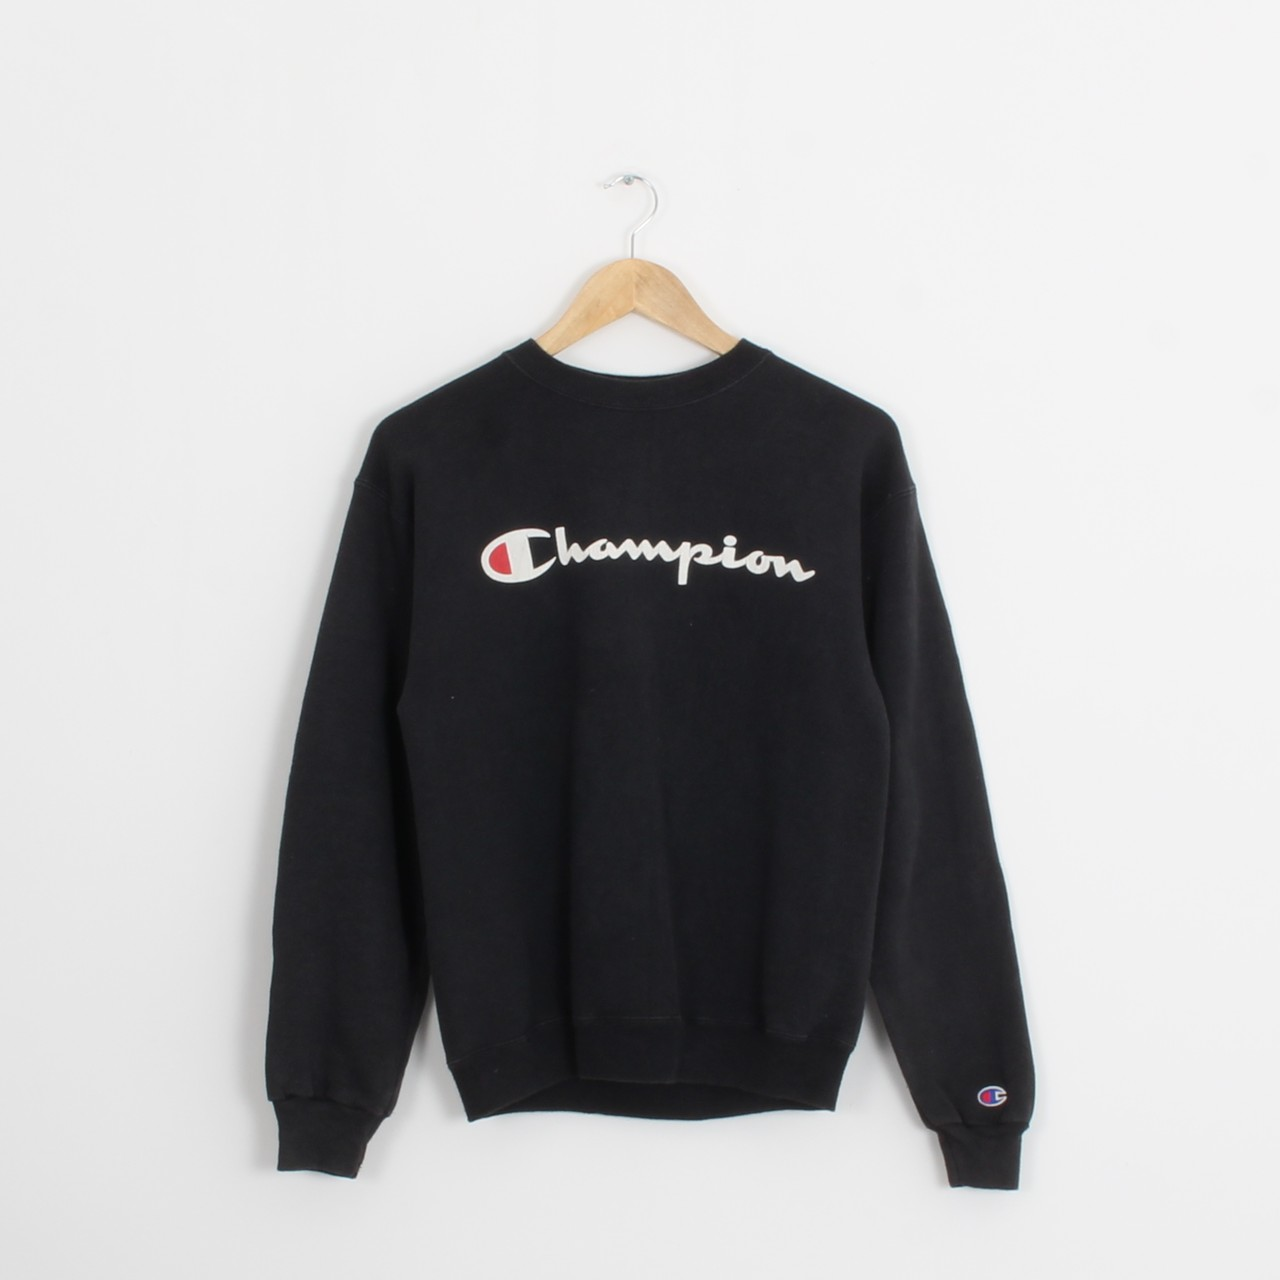 Vintage Black Champion Spell Out Sweatshirt (Vb678) by Depop